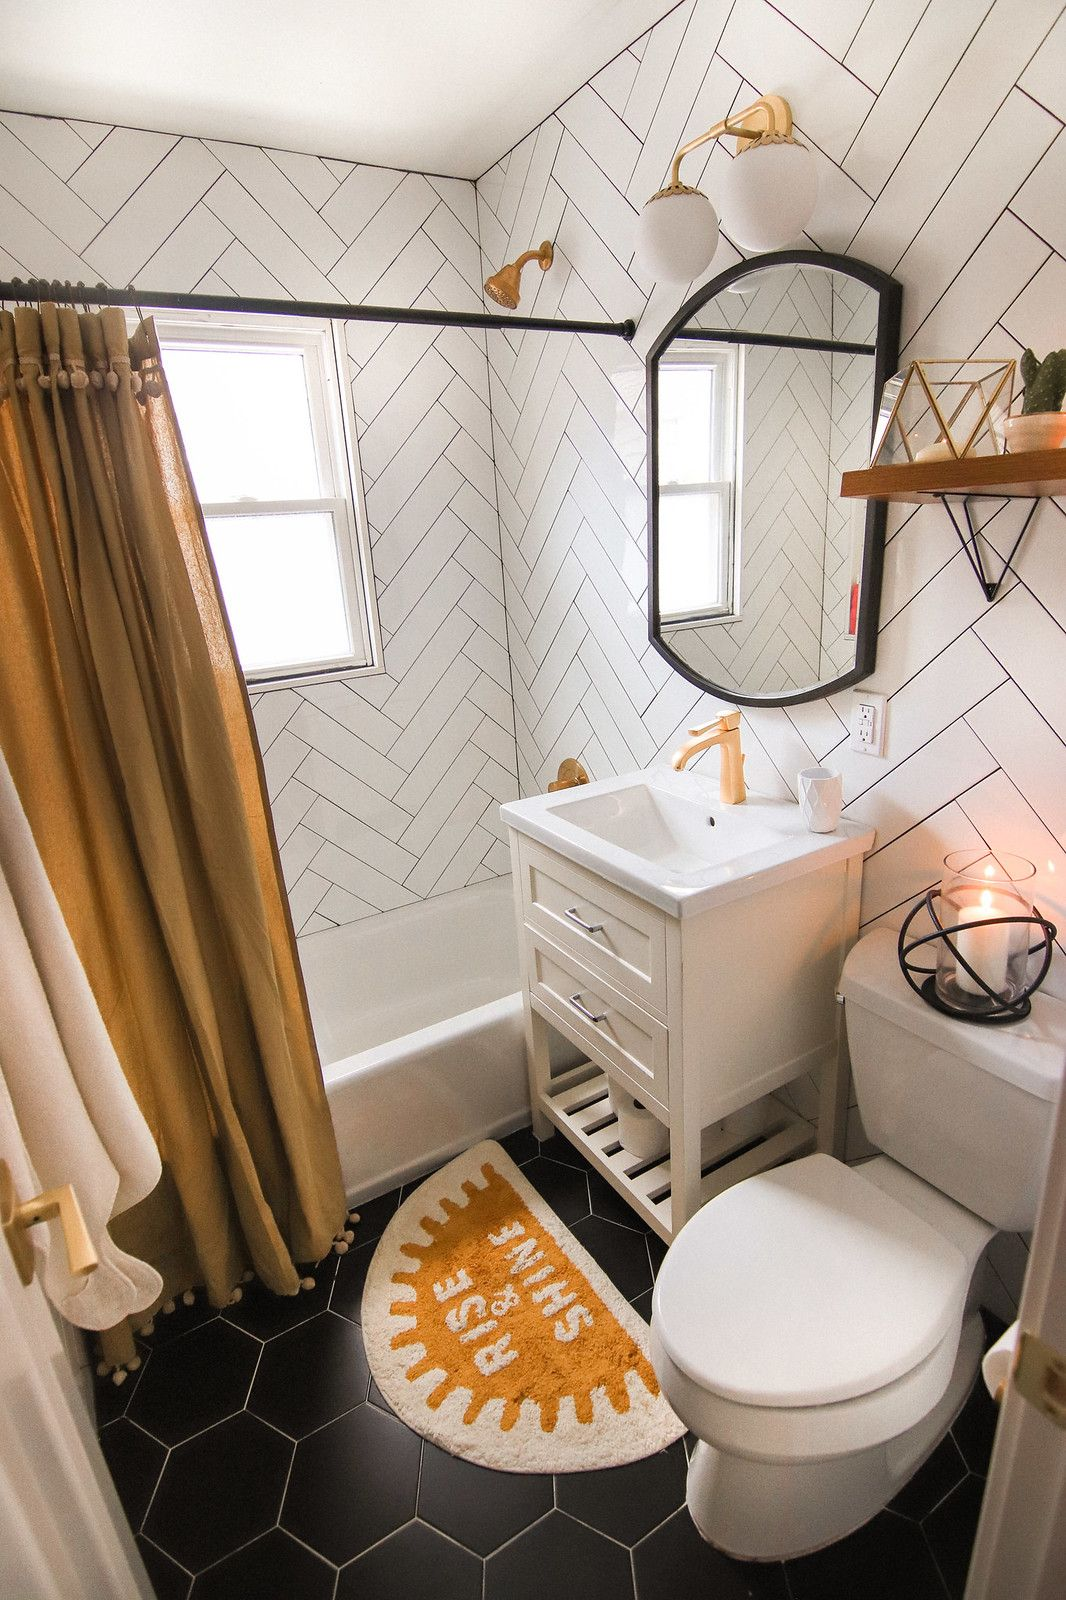 12 Small Bathrooms That Inspired My Renovation Living After Midnite Bathroom Decor Apartment Home Remodeling Bathroom Inspiration